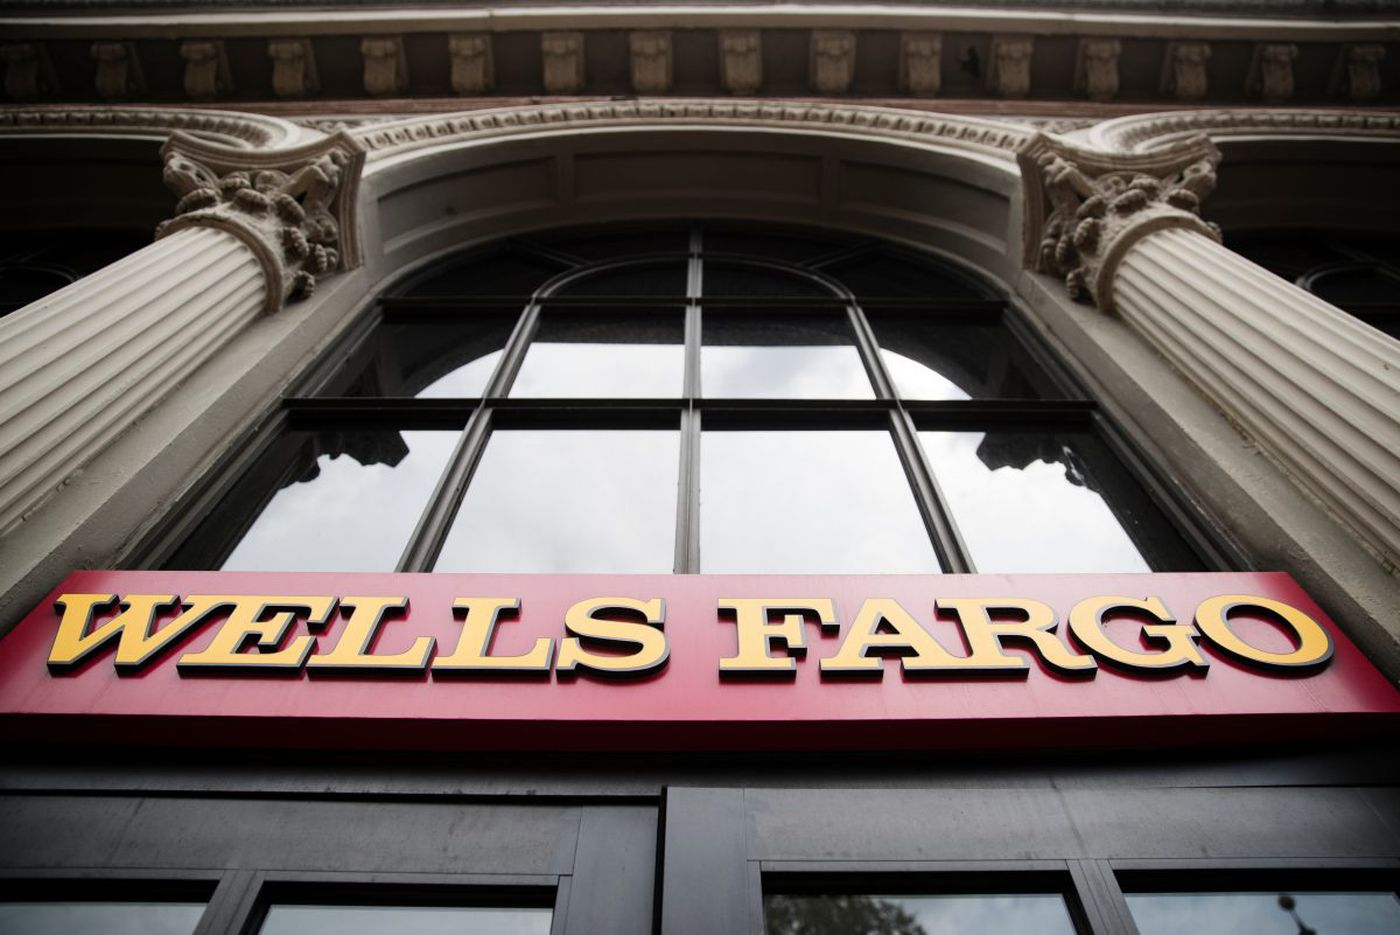 Wells Fargo says it faces $1 billion penalty for mortgage, auto business misdeeds